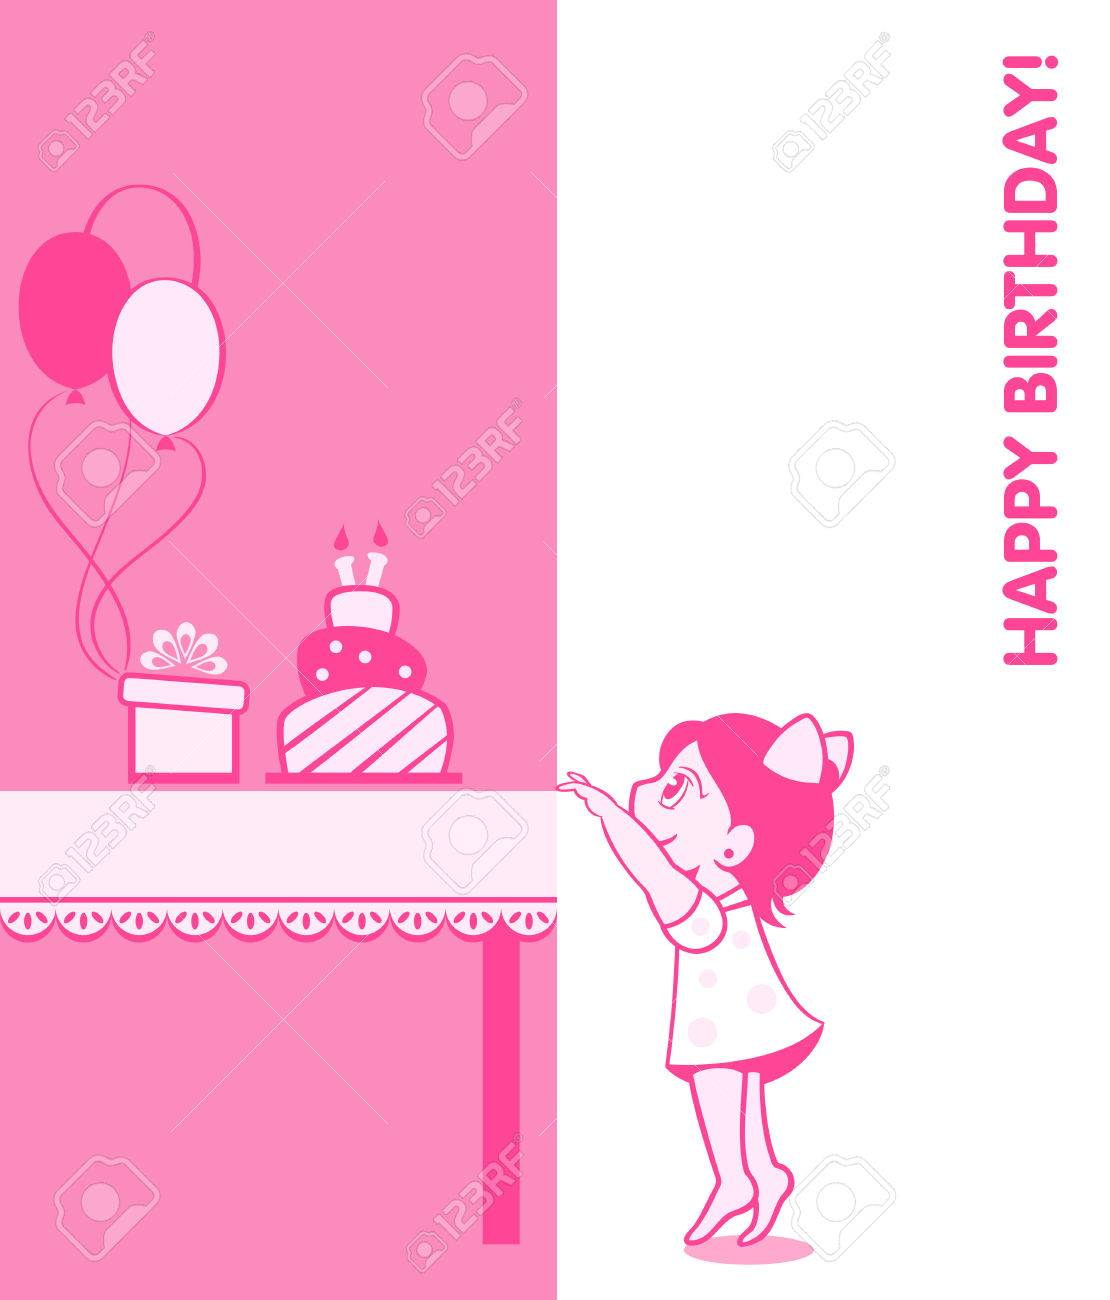 Little girl birthday card with cake, present and balloons Stock Vector - 22967958